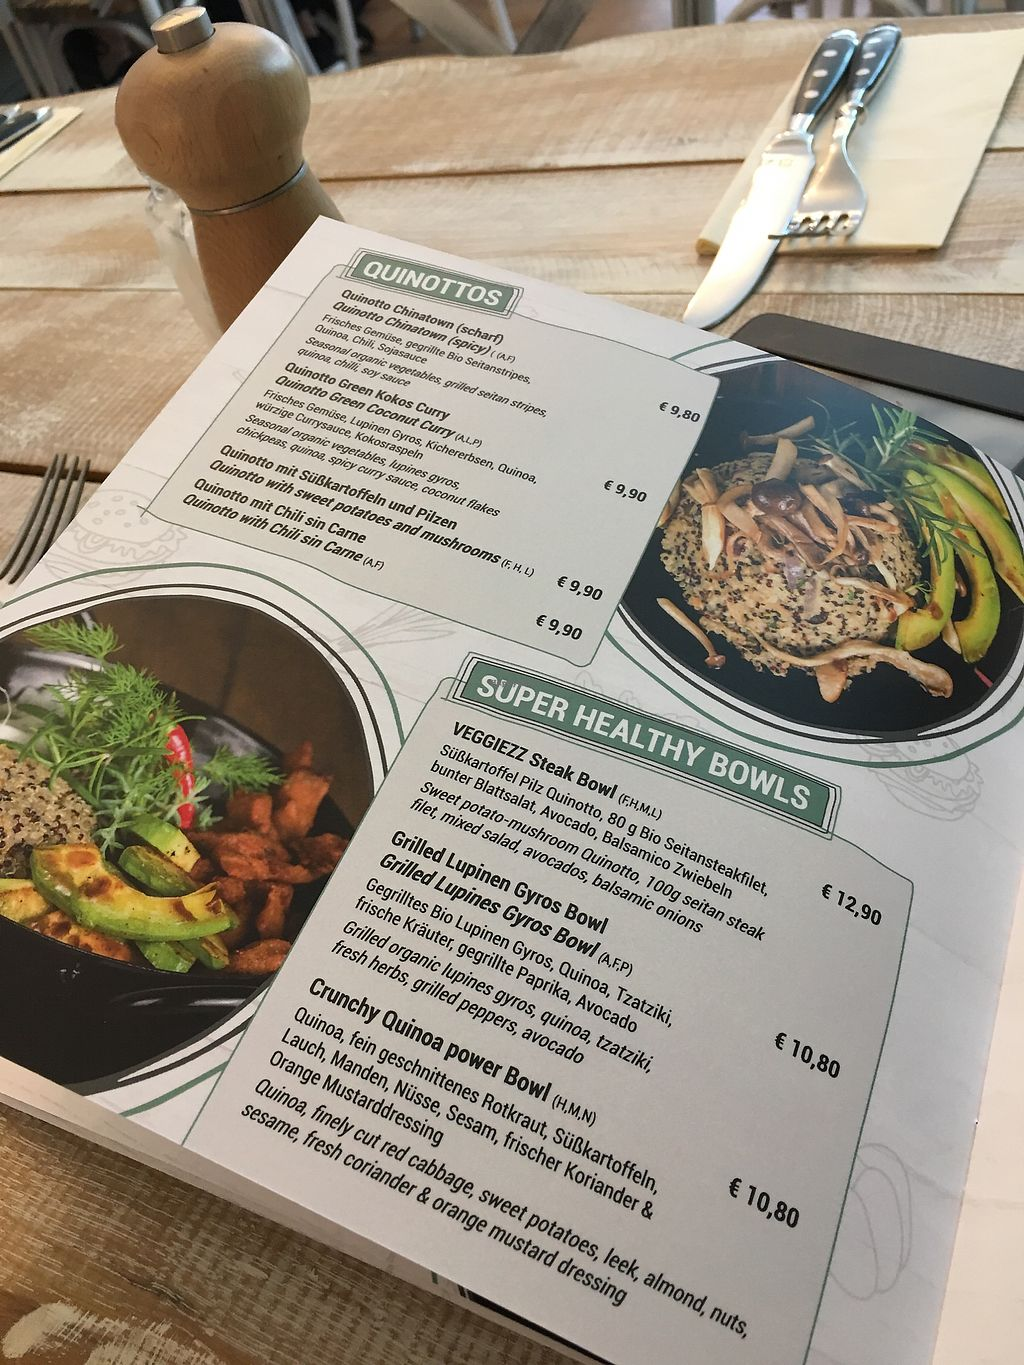 """Photo of Veggiezz - Opernring  by <a href=""""/members/profile/LilyHarper"""">LilyHarper</a> <br/>One page of the menu - one of the best vegan menus I've ever seen <br/> September 7, 2017  - <a href='/contact/abuse/image/96634/301796'>Report</a>"""